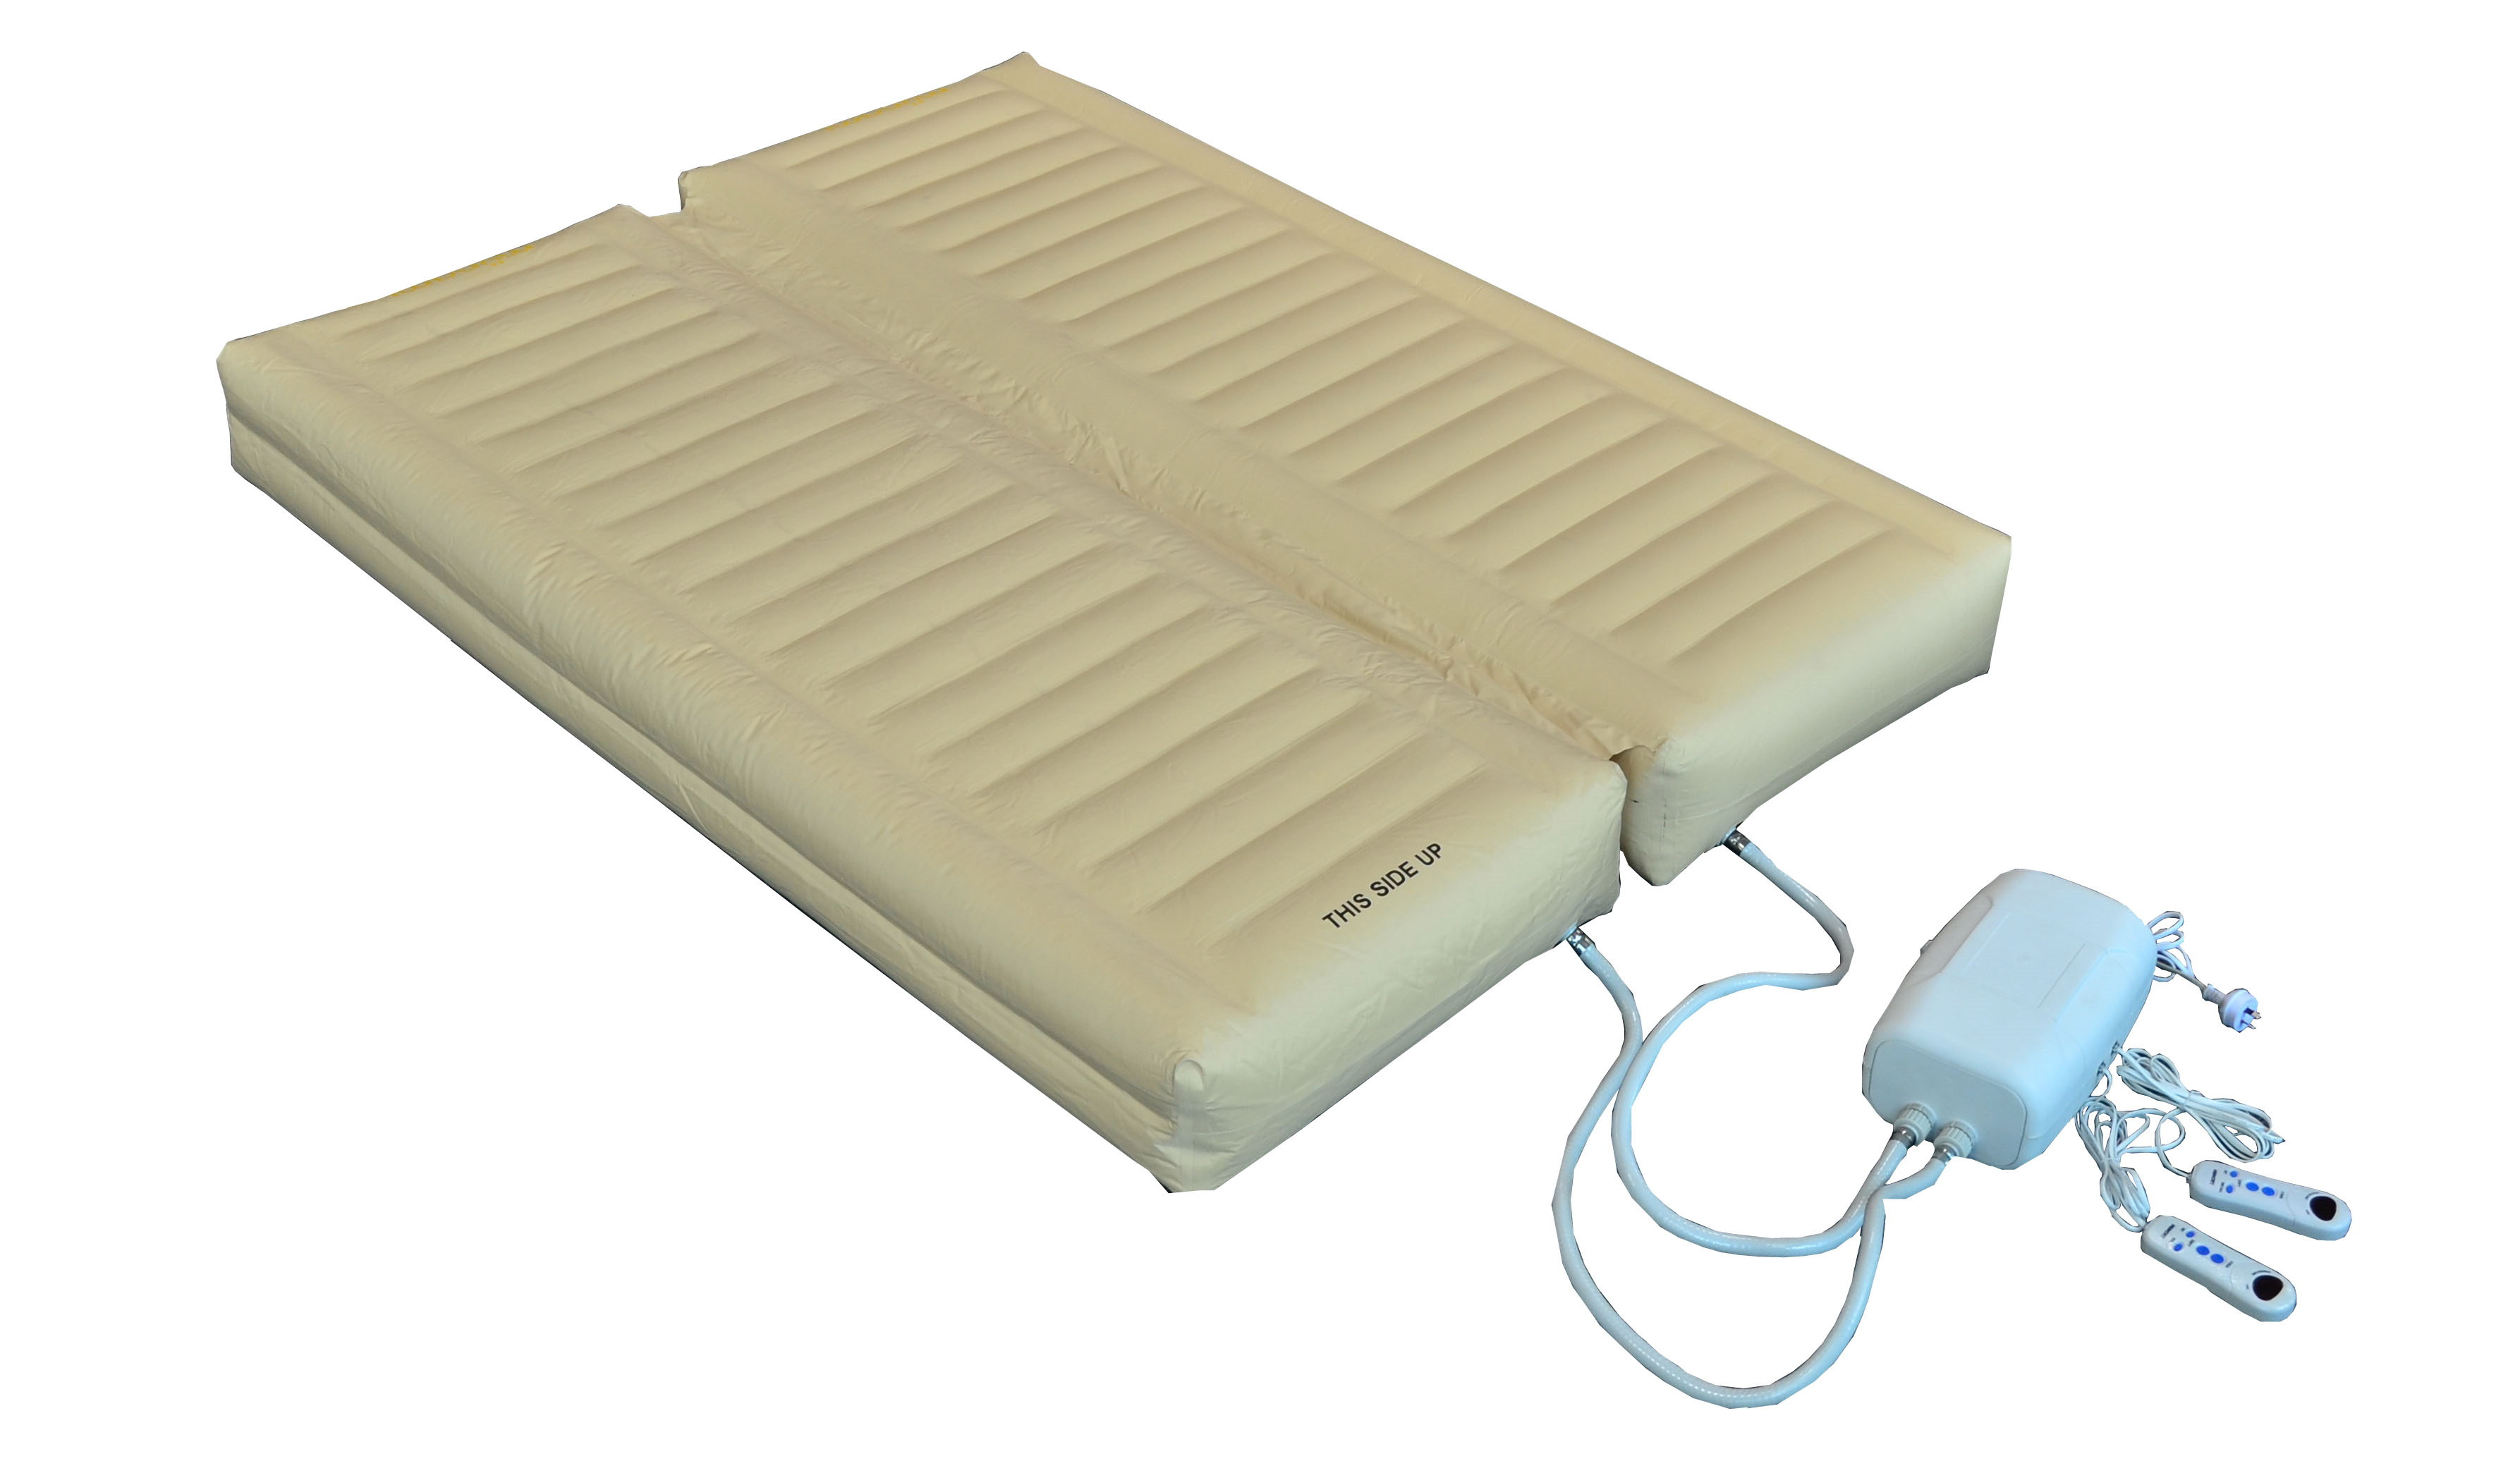 Nylon Air Mattress For Adjustable Air Bed